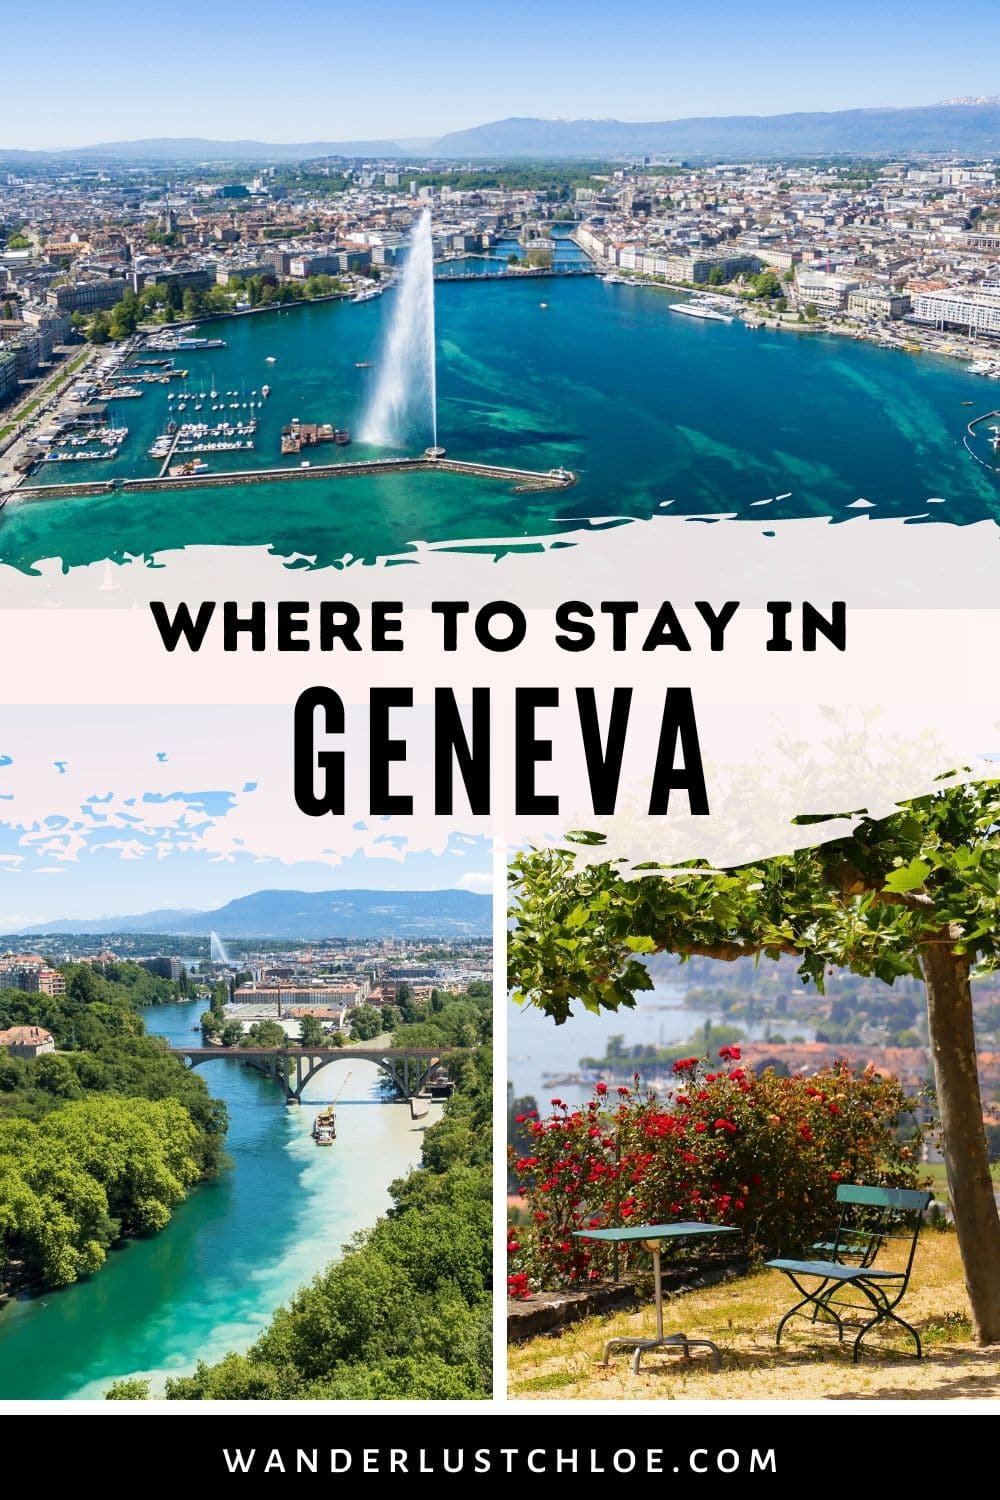 Where to stay in Geneva